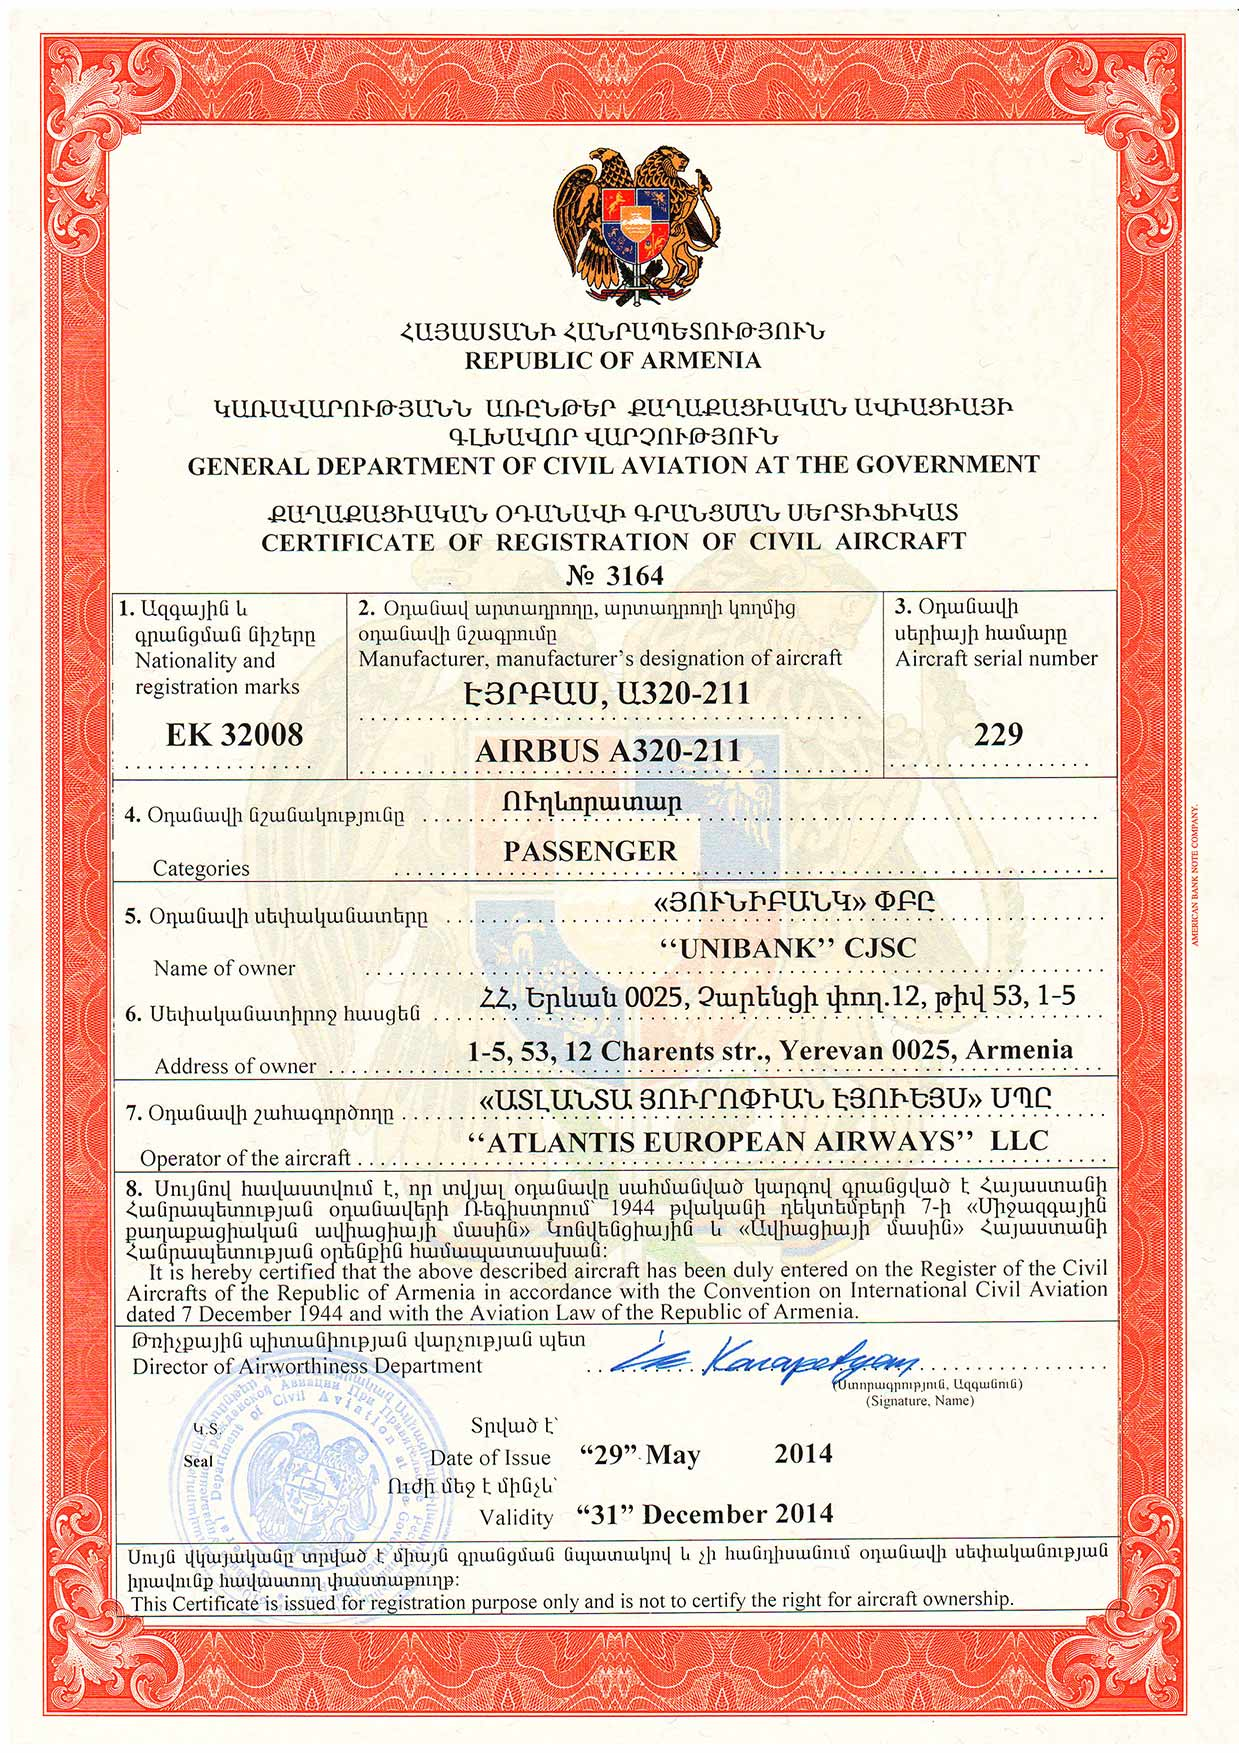 Certificate of Registration of Civil Aircraft